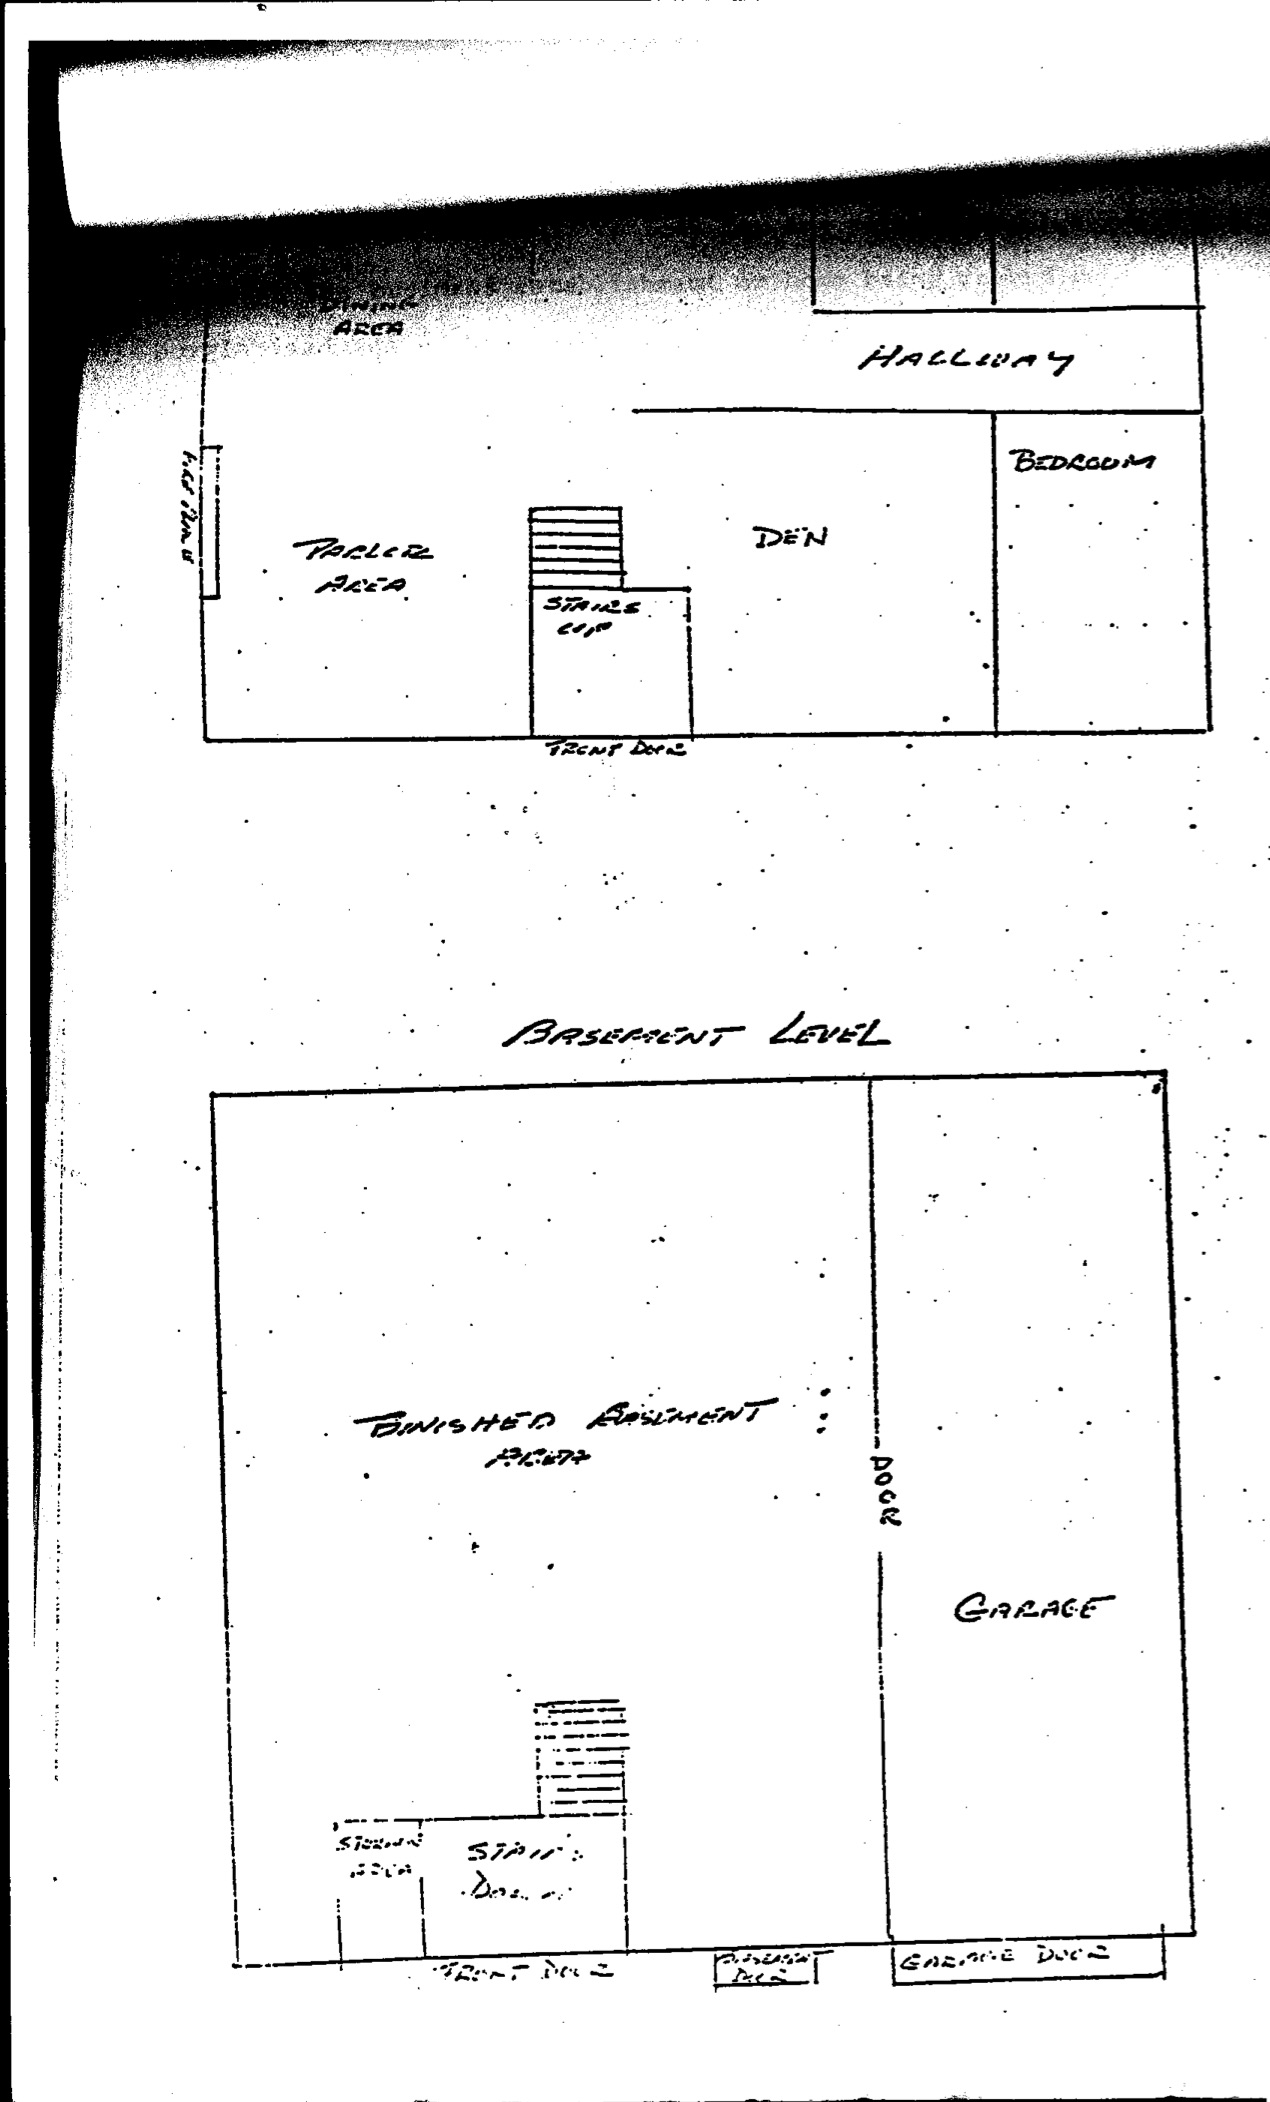 While devising a plan to break into Tony's home and plant hidden microphones, s tate police drew this map of the house.  Courtesy of Brian Andrews.